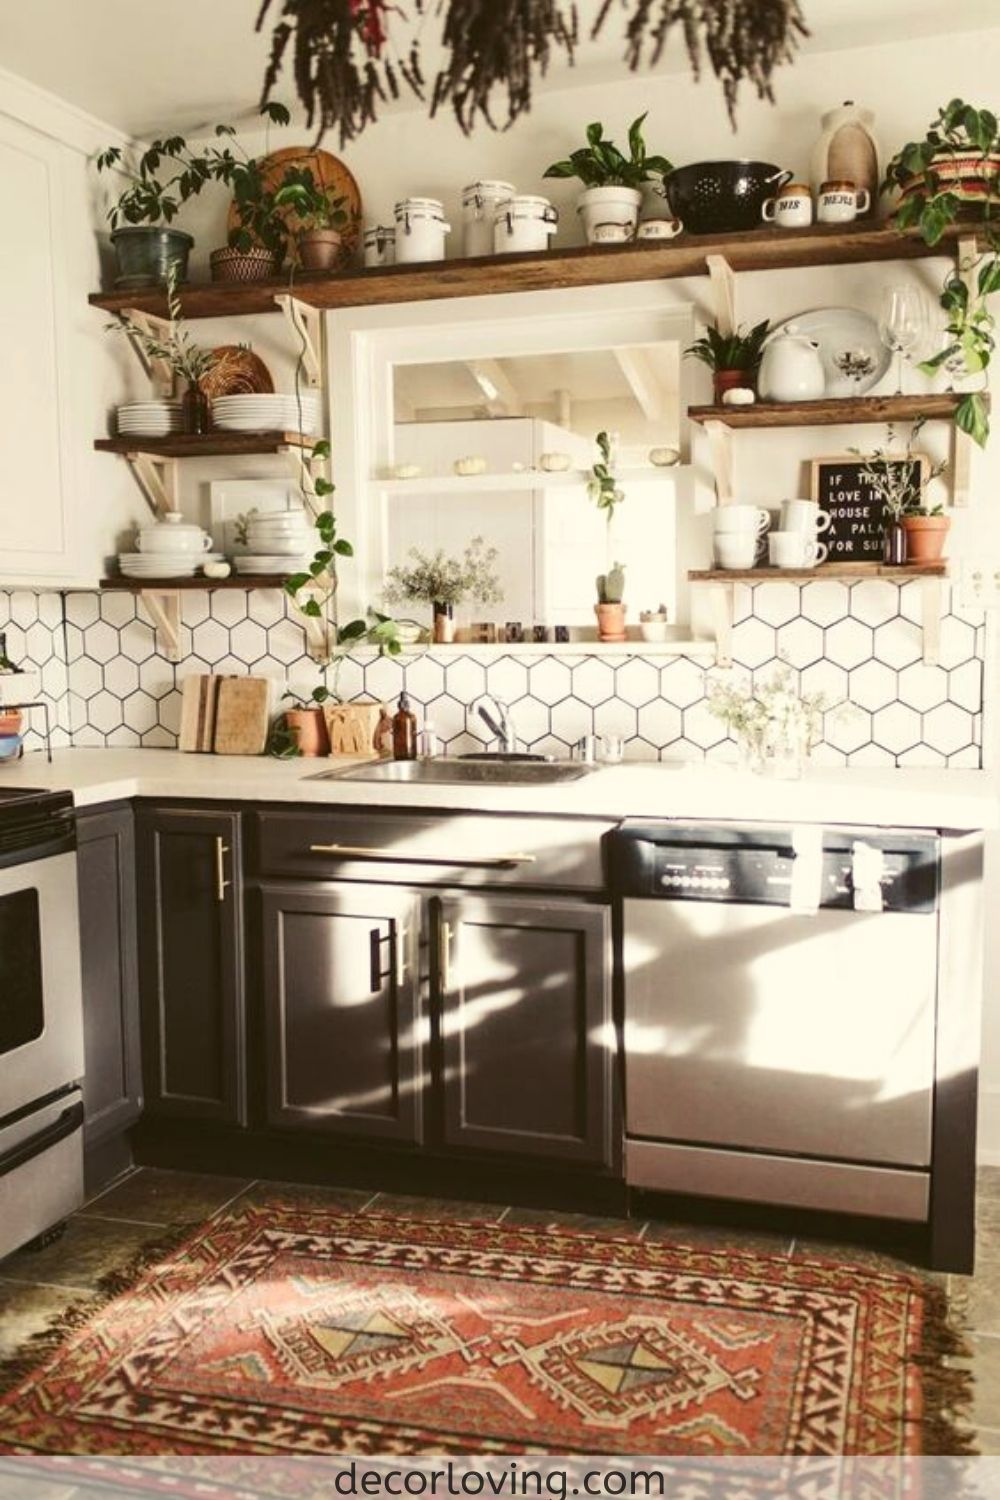 20 Best Kitchen Decorating Ideas Above Kitchen Cabinets Wall Decor In 2020 Kitchen Style Kitchen Remodel Before And After Boho Kitchen